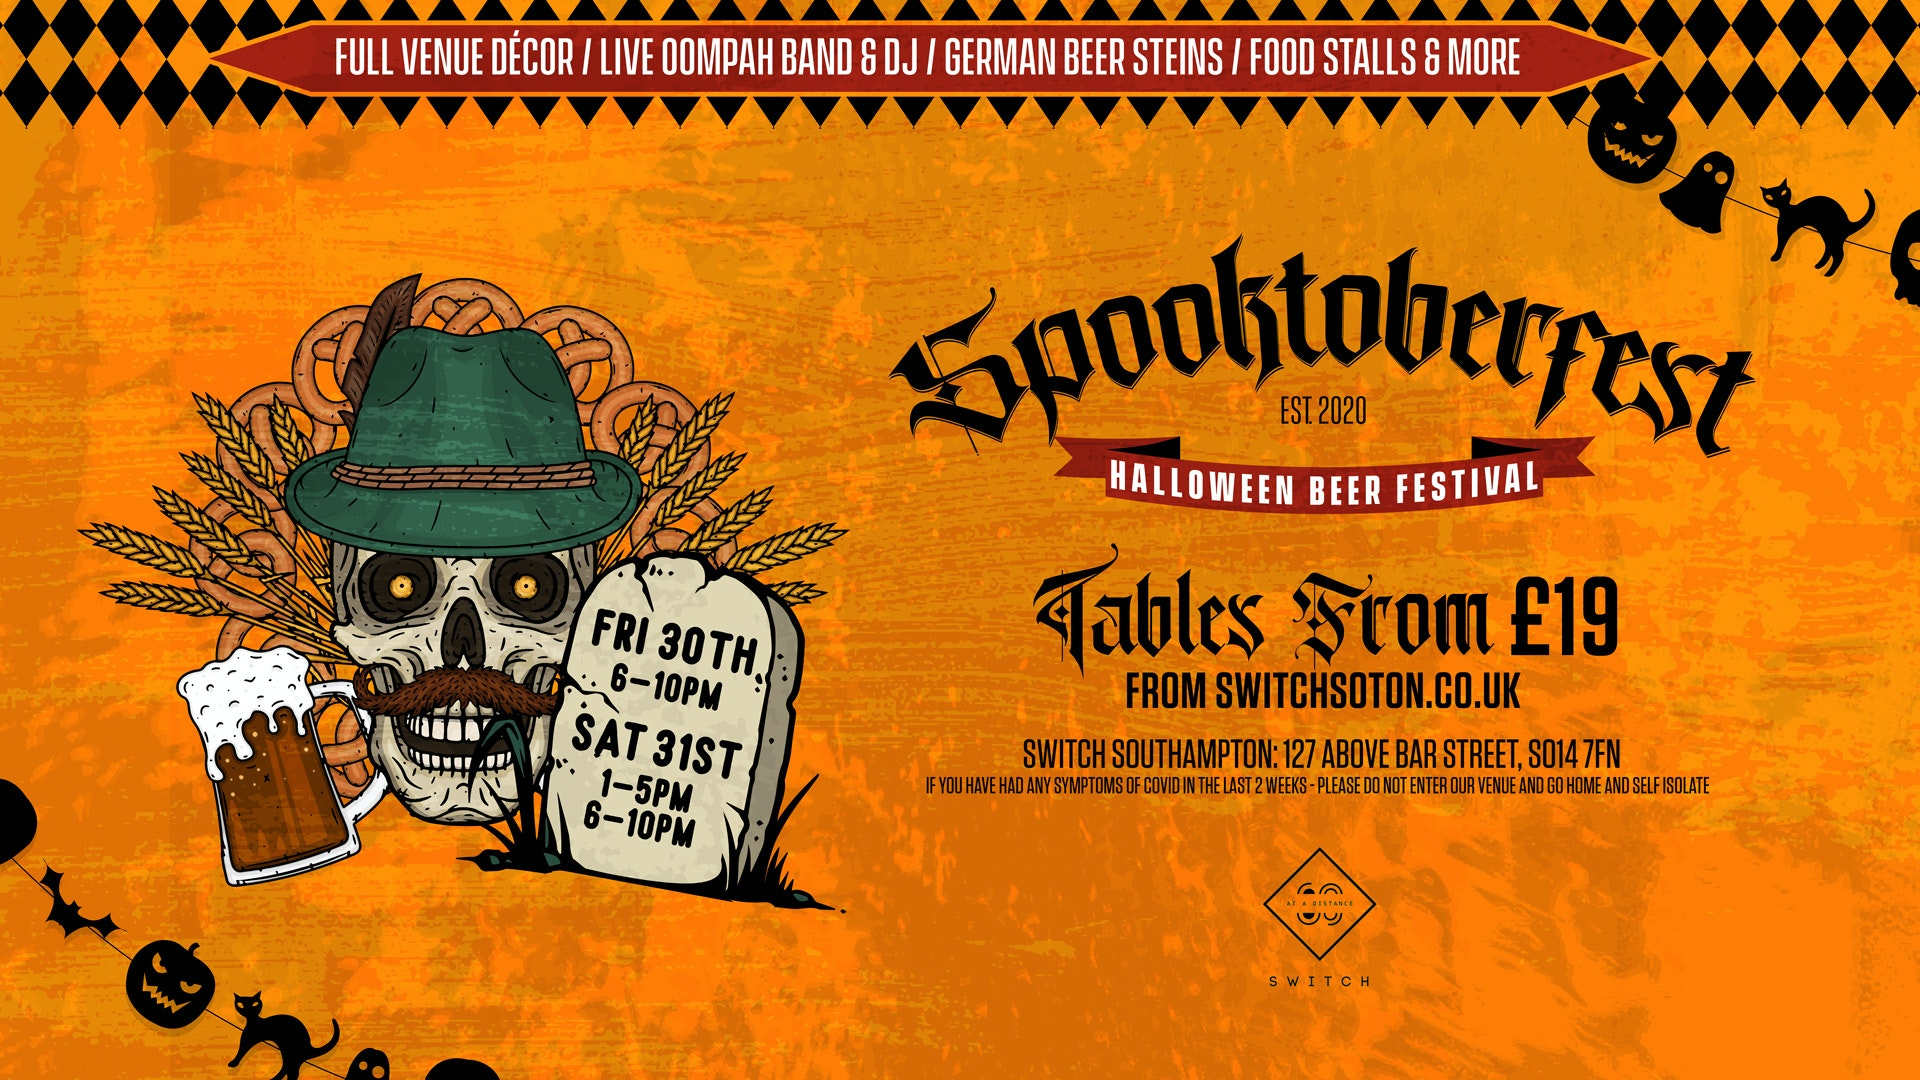 Spooktoberfest: Halloween Beer Festival (Saturday Day Session)